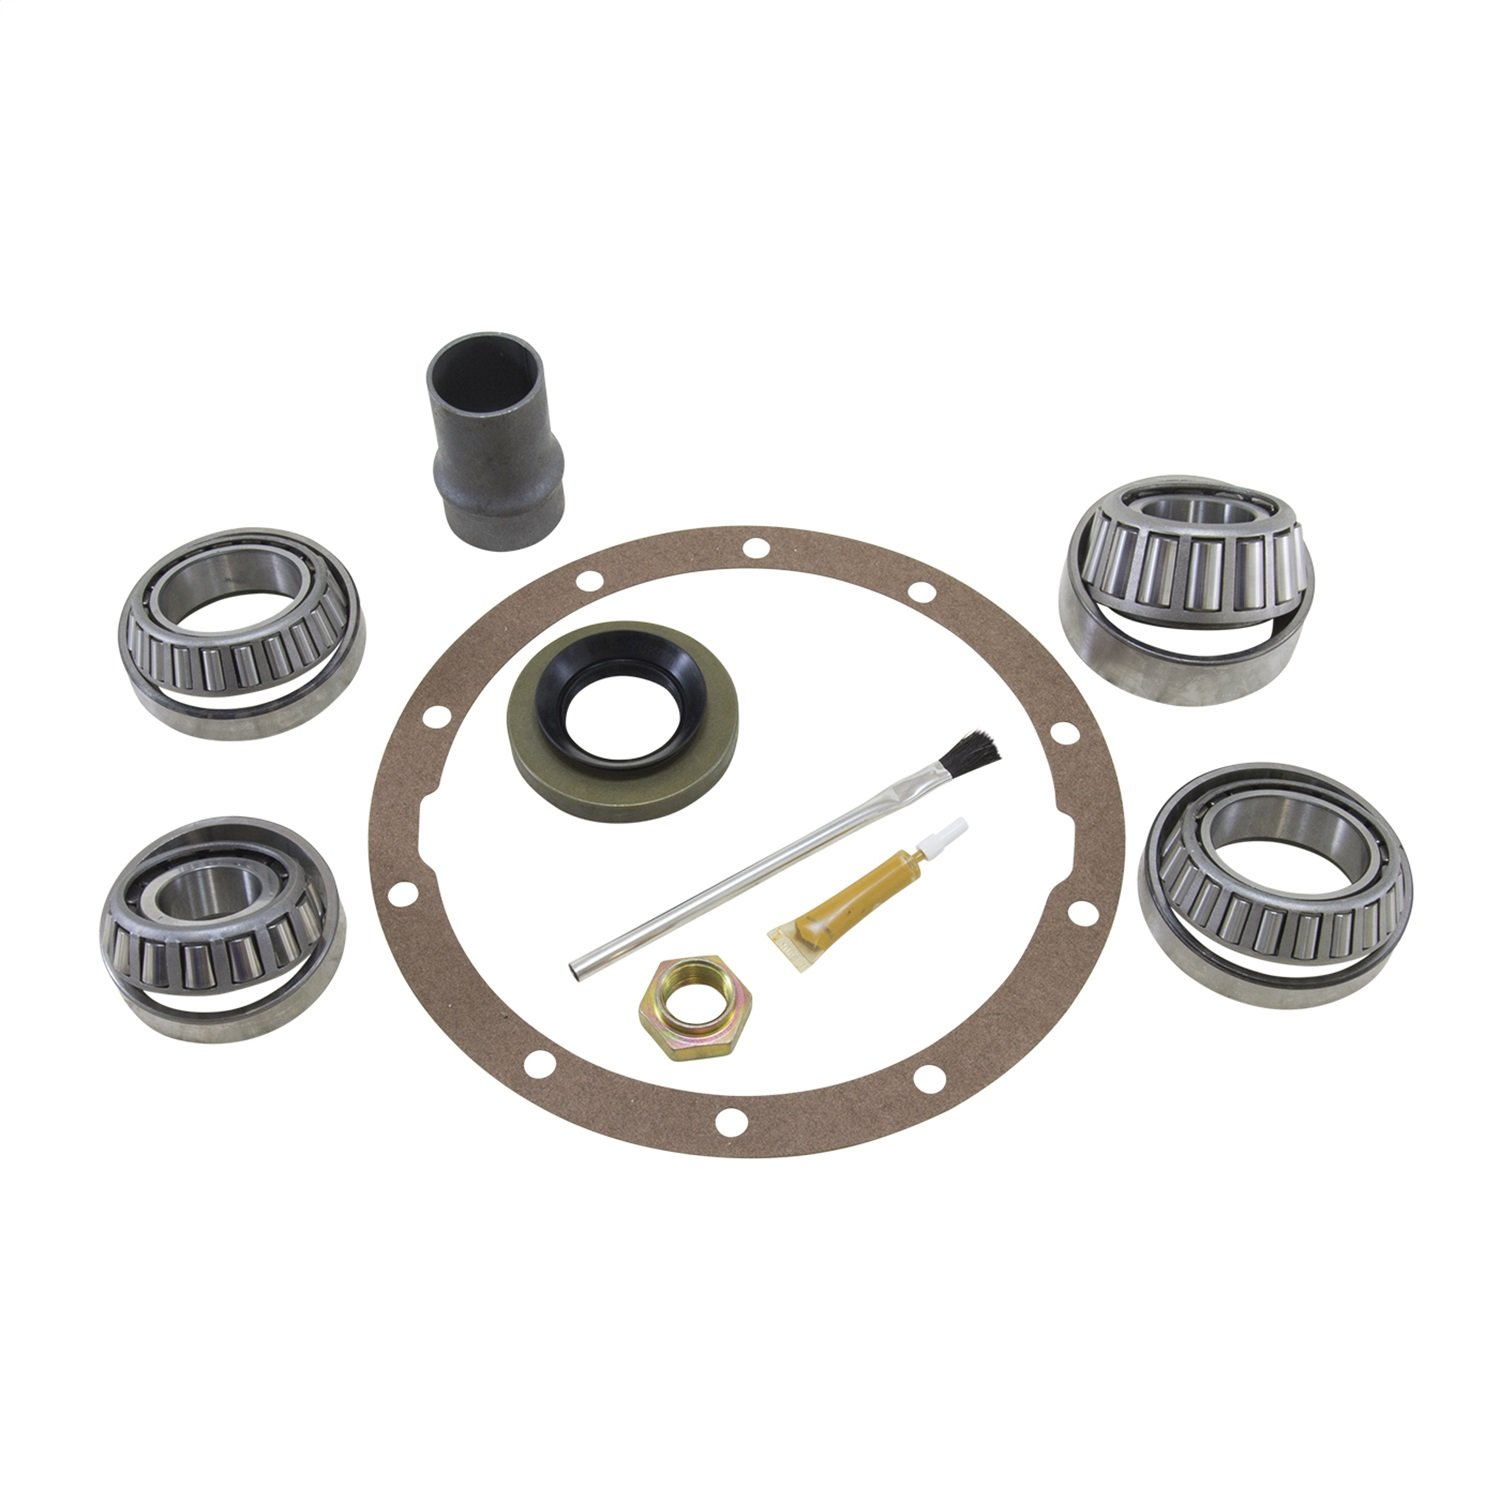 Yukon (BK T8-A) Bearing Installation Kit for Toyota 8 Differential with Aftermarket Ring and Pinion Yukon Gear